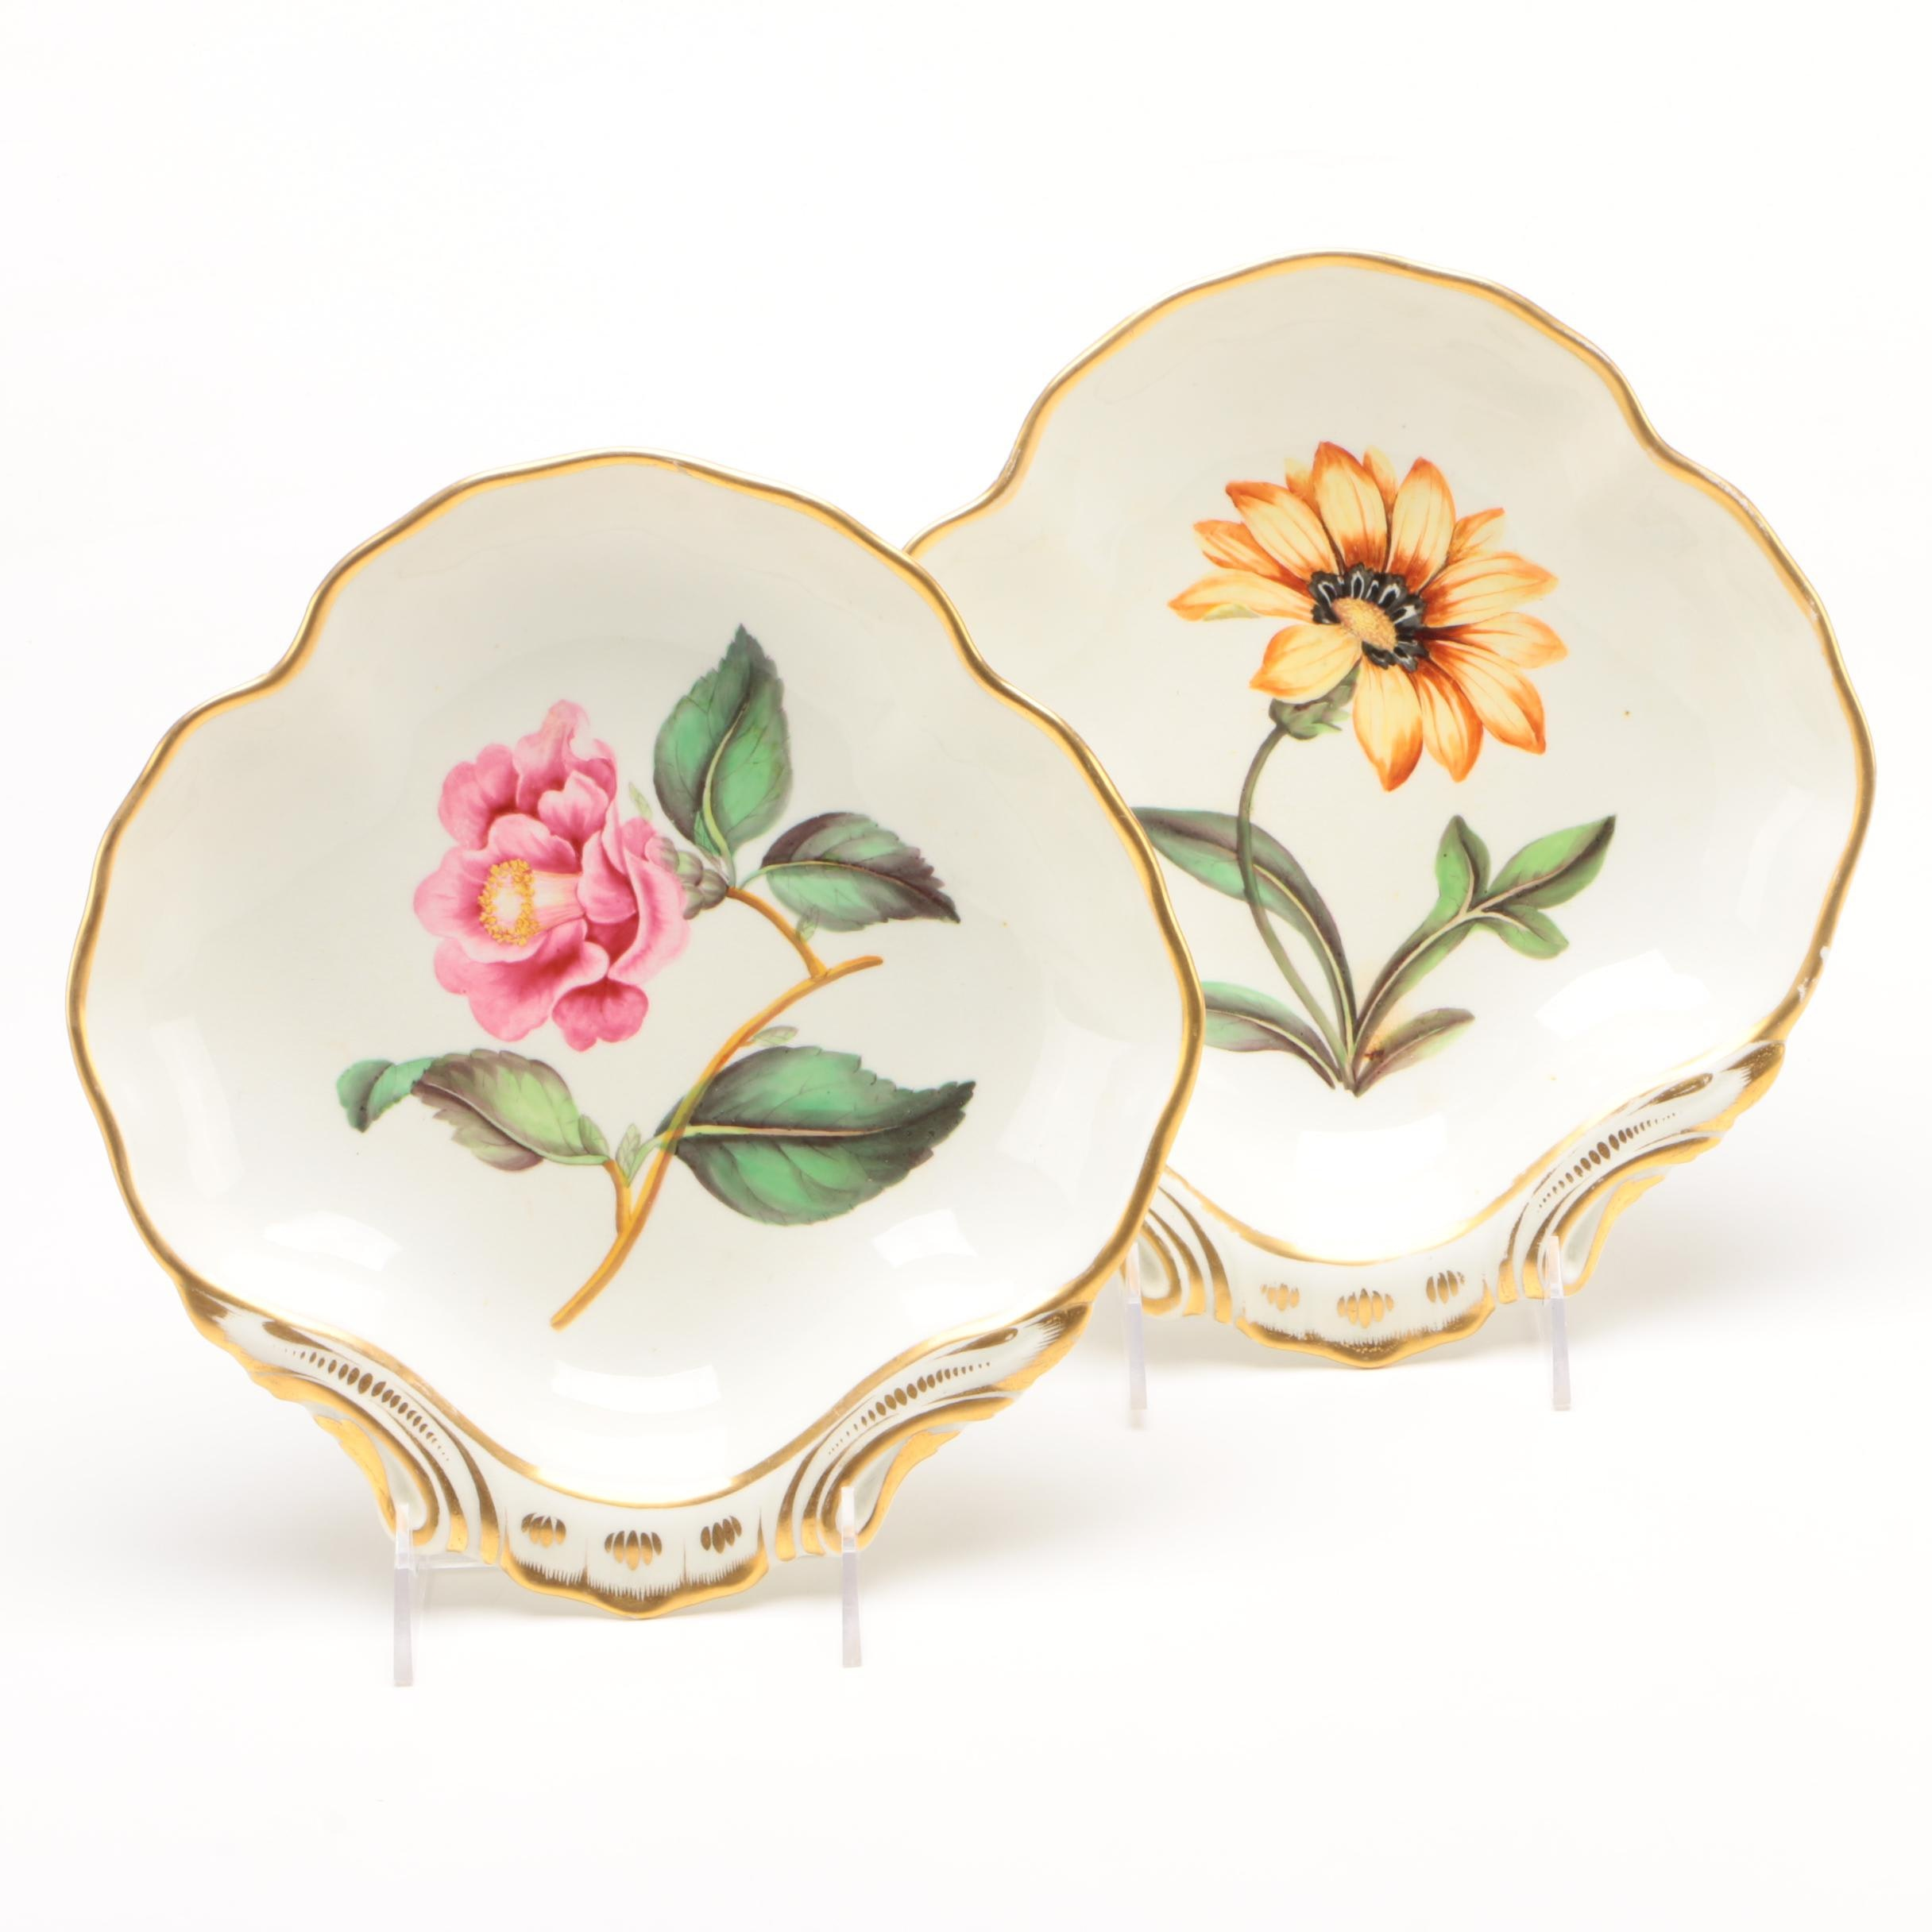 Duesbury Derby Botanical Painted Shell Dessert Shell Dishes